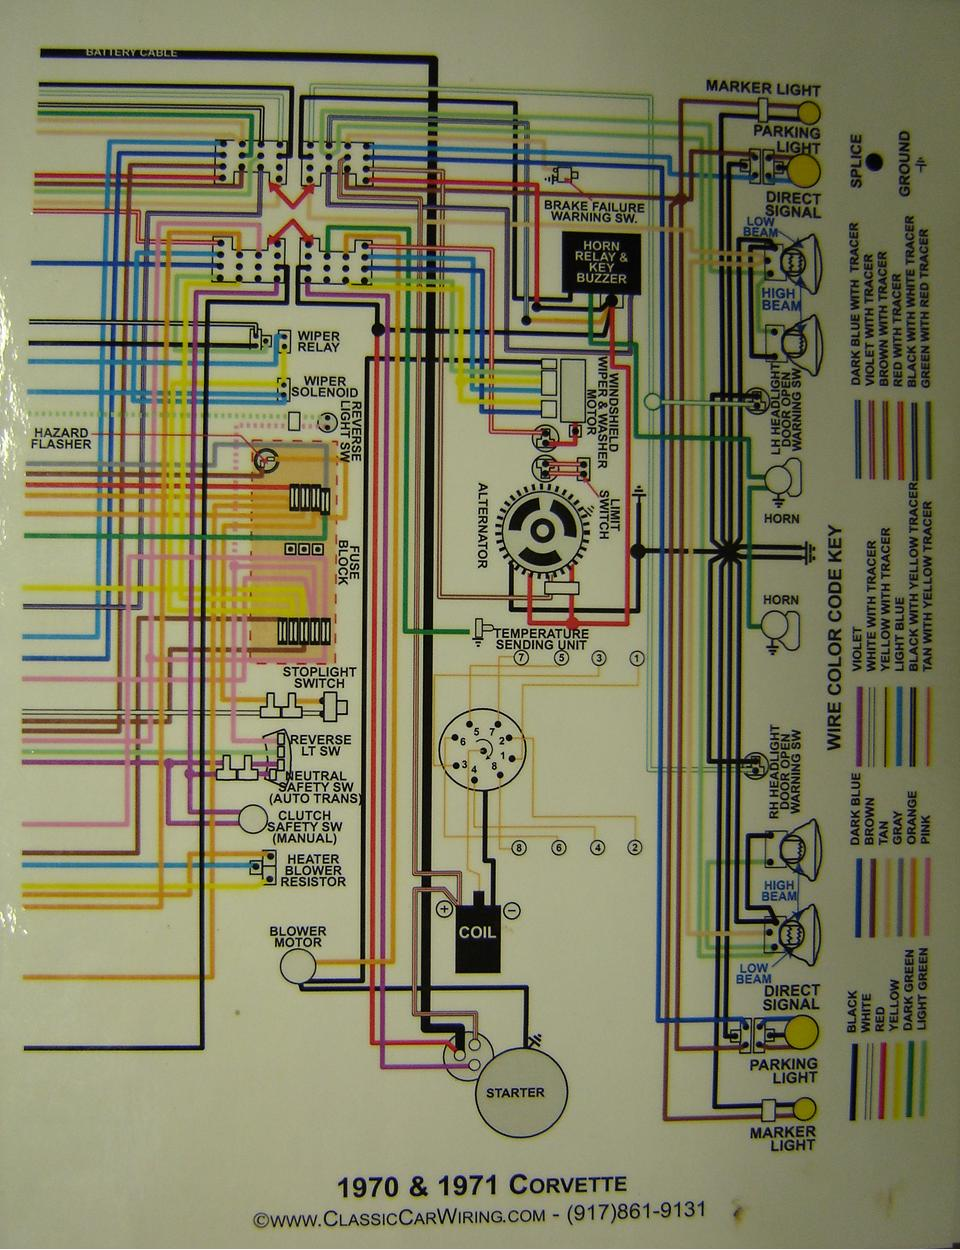 1970 71 corvette color wiring diagram B 1970 chevelle wiring diagram efcaviation com 1967 chevelle wiring diagram pdf at soozxer.org